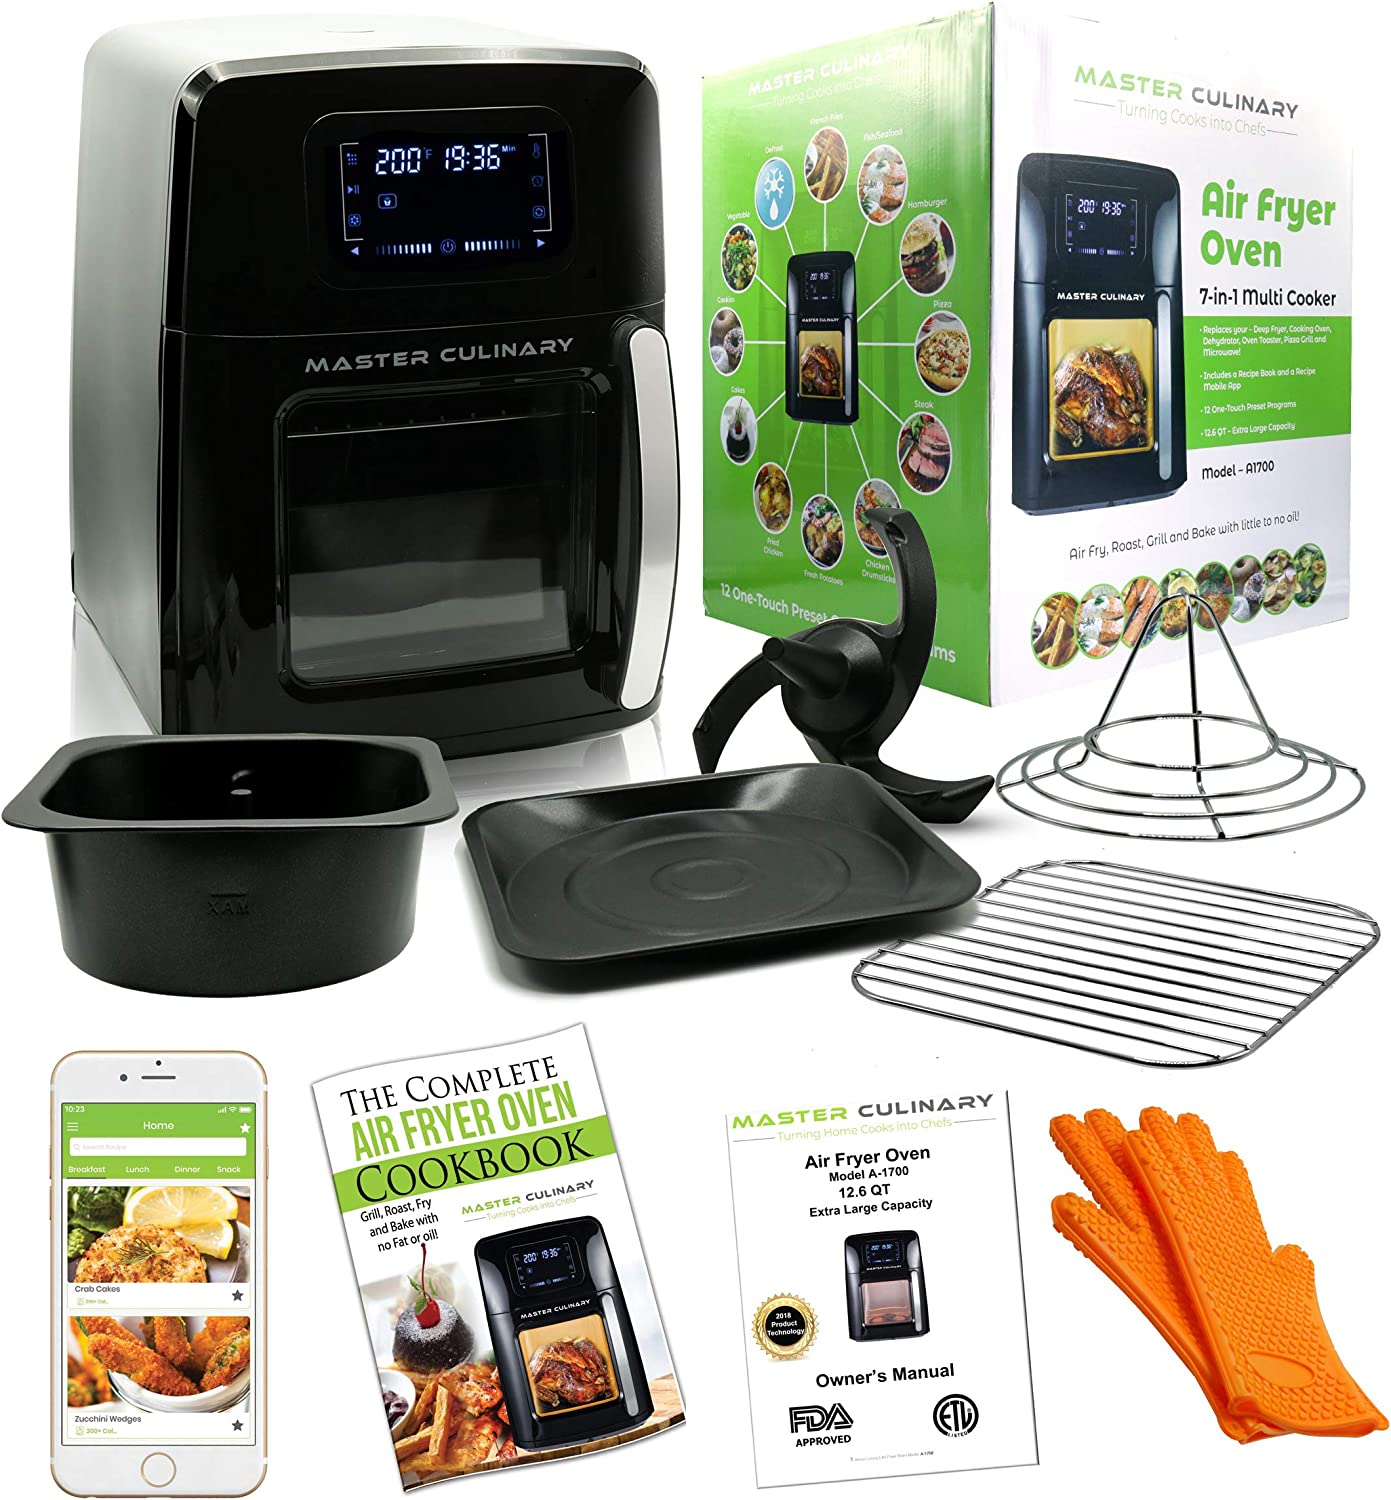 Master Culinary Air Fryer Oven   12 QT XL Family Size   7 in 1 Multi Cooker   FDA Approved   Free Mobile App and Recipe Book Included   Rapid Air Technology   Digital Display, Slick Design, Ultra Quiet, 12 Preset Programs, 1700W, 1 Year Warranty   VOTED AS THE BEST IN THE MARKET FOR 2018   Like Seen On TV